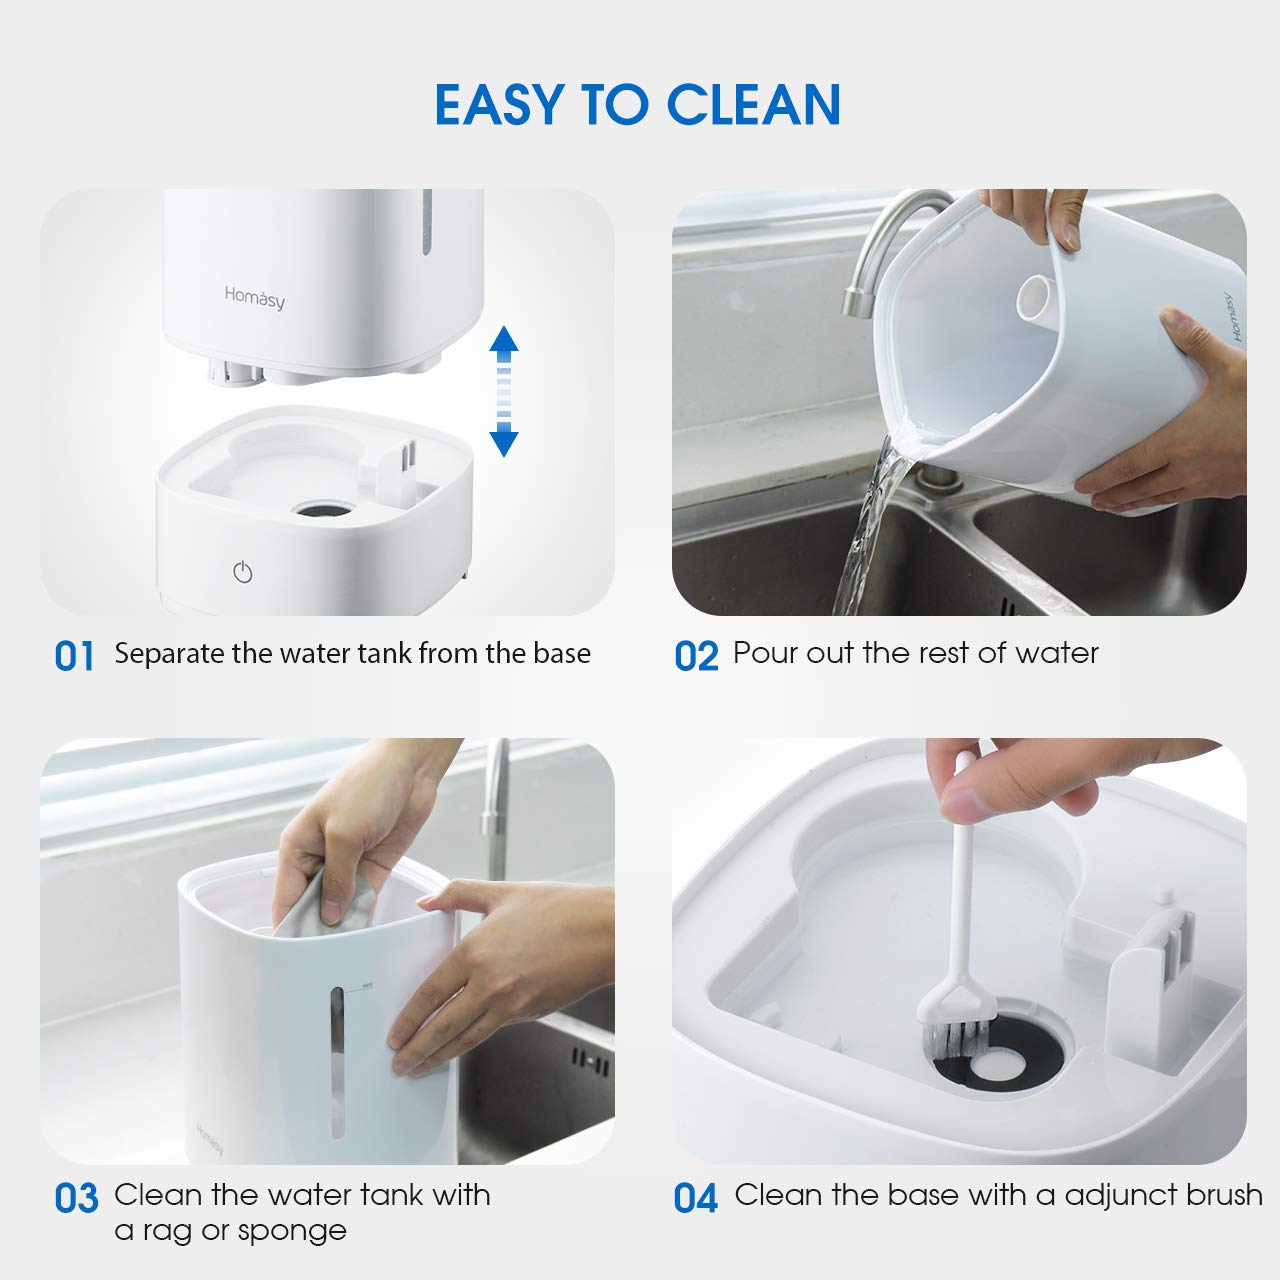 Homasy Cool Mist Humidifiers Ultrasonic Humidifier for Home Babies Bedroom,【Whisper-Quiet】 3 Mist Levels /& Sleep Mode【Essential Oil Nozzle】 Auto Shut-Off Easy to Clean /& Refill 4.5L//1.2 Gallon